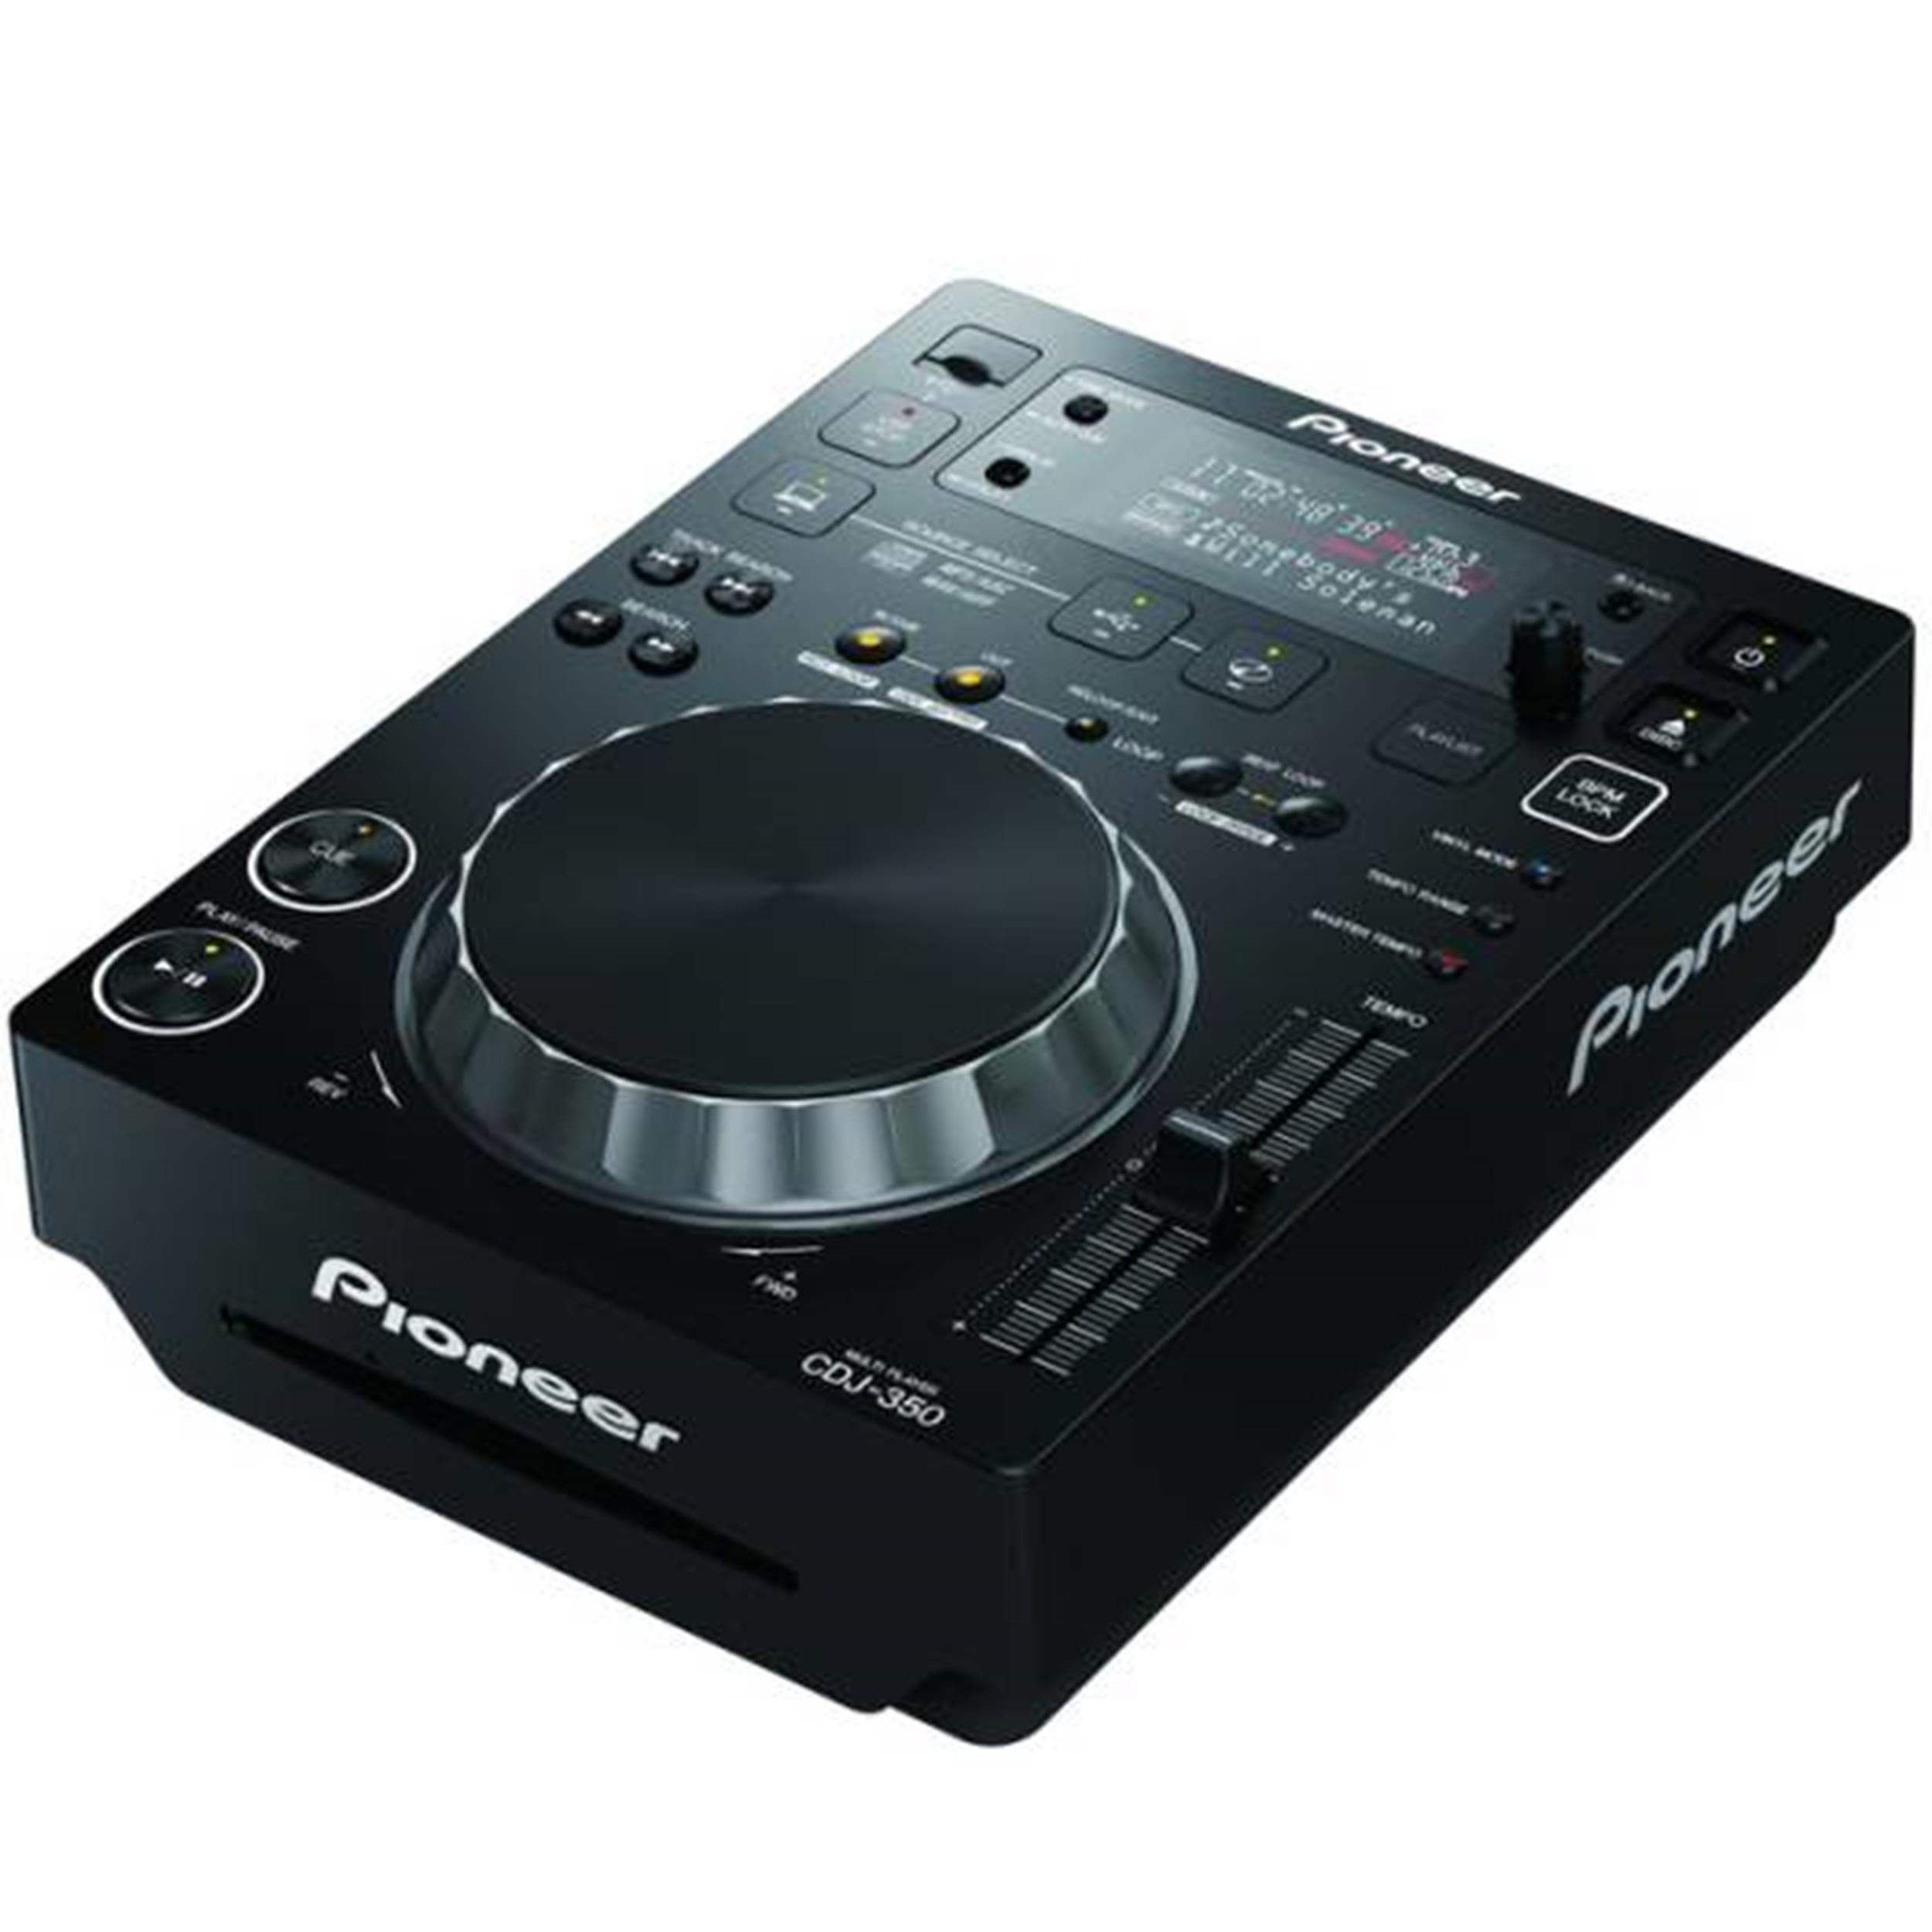 PIONEER CDJ 350 DJ CD PLAYER